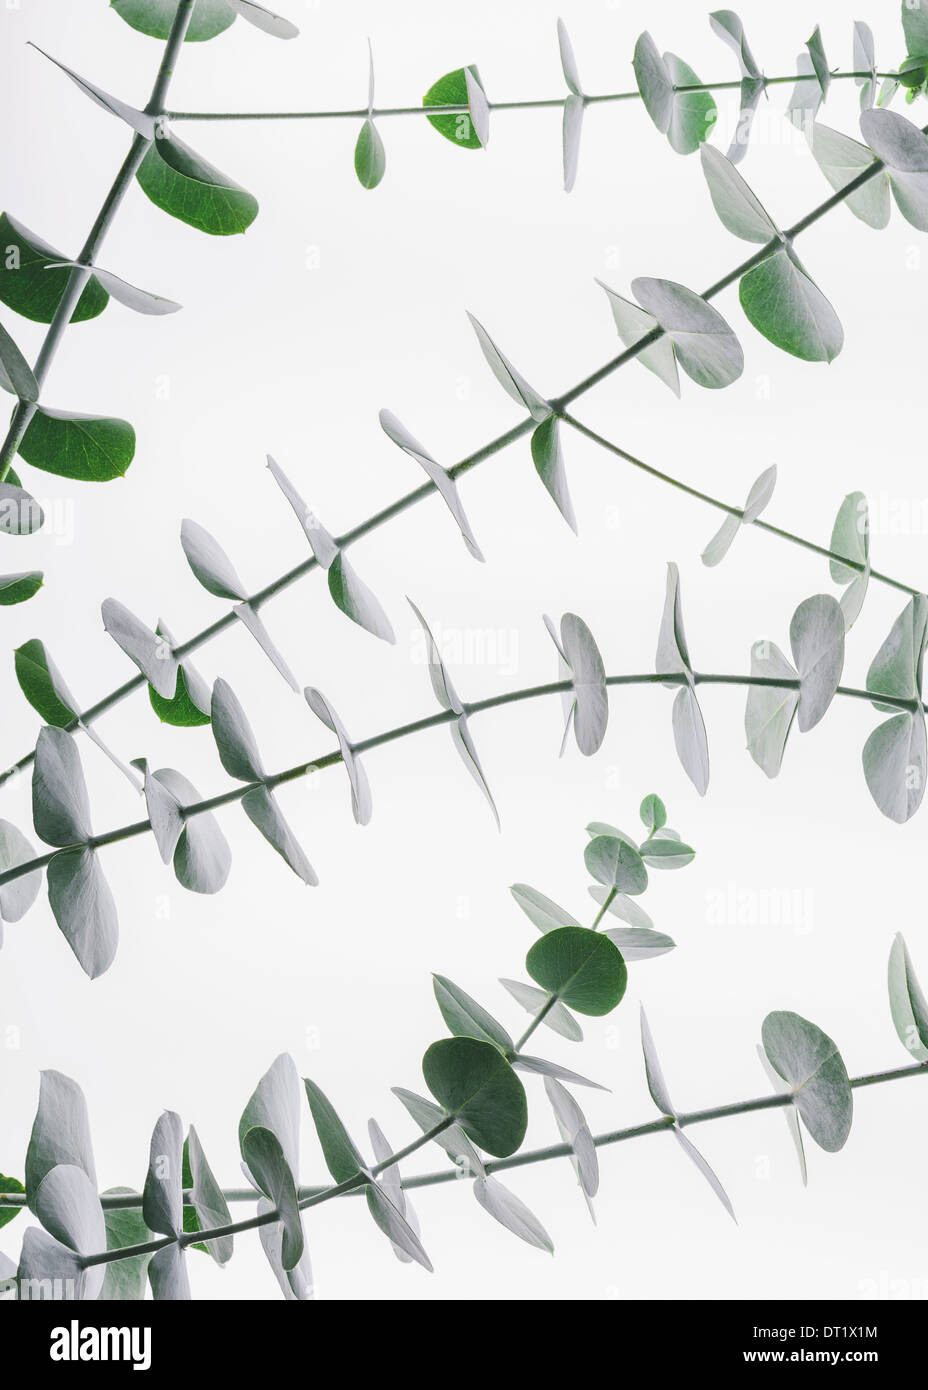 Close up of the small green leaves of the Eucalyptus gunnii tree also know as Cider Gum Leaves arranged in pairs on the twig - Stock Image